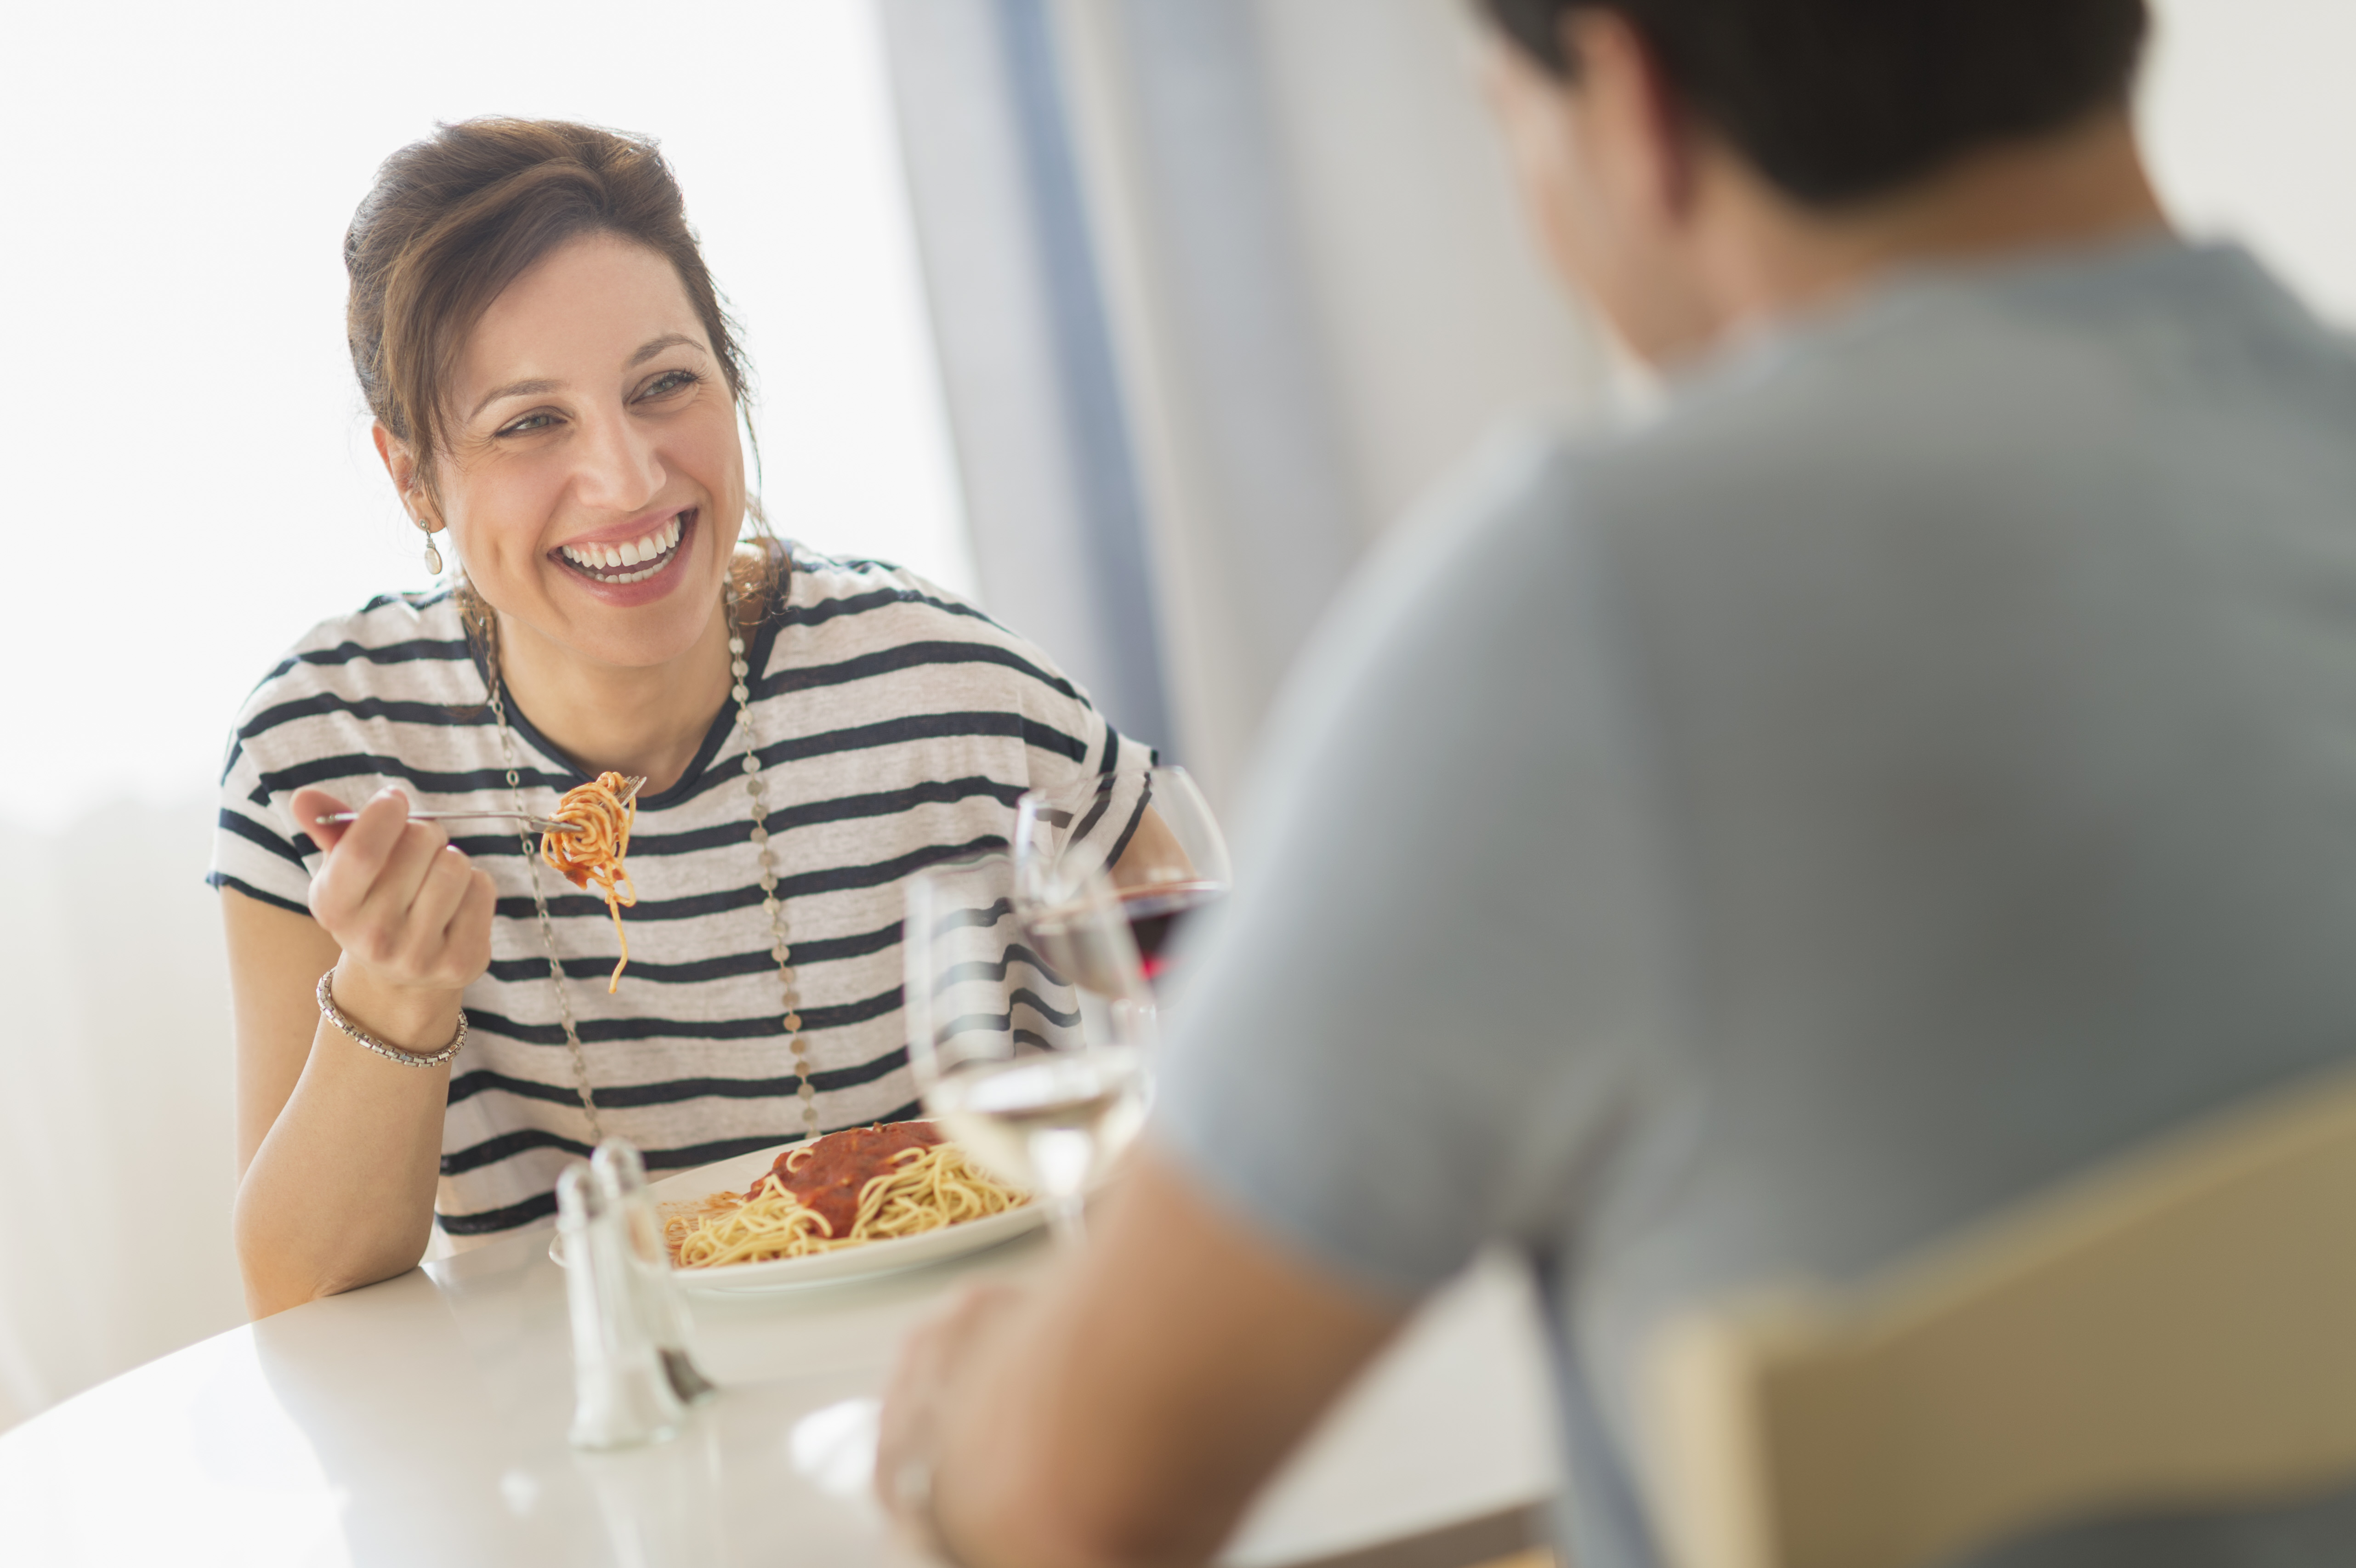 Eating Dinner at This Time Will Help Lower Blood Sugar and Burn Fat, New Study Says